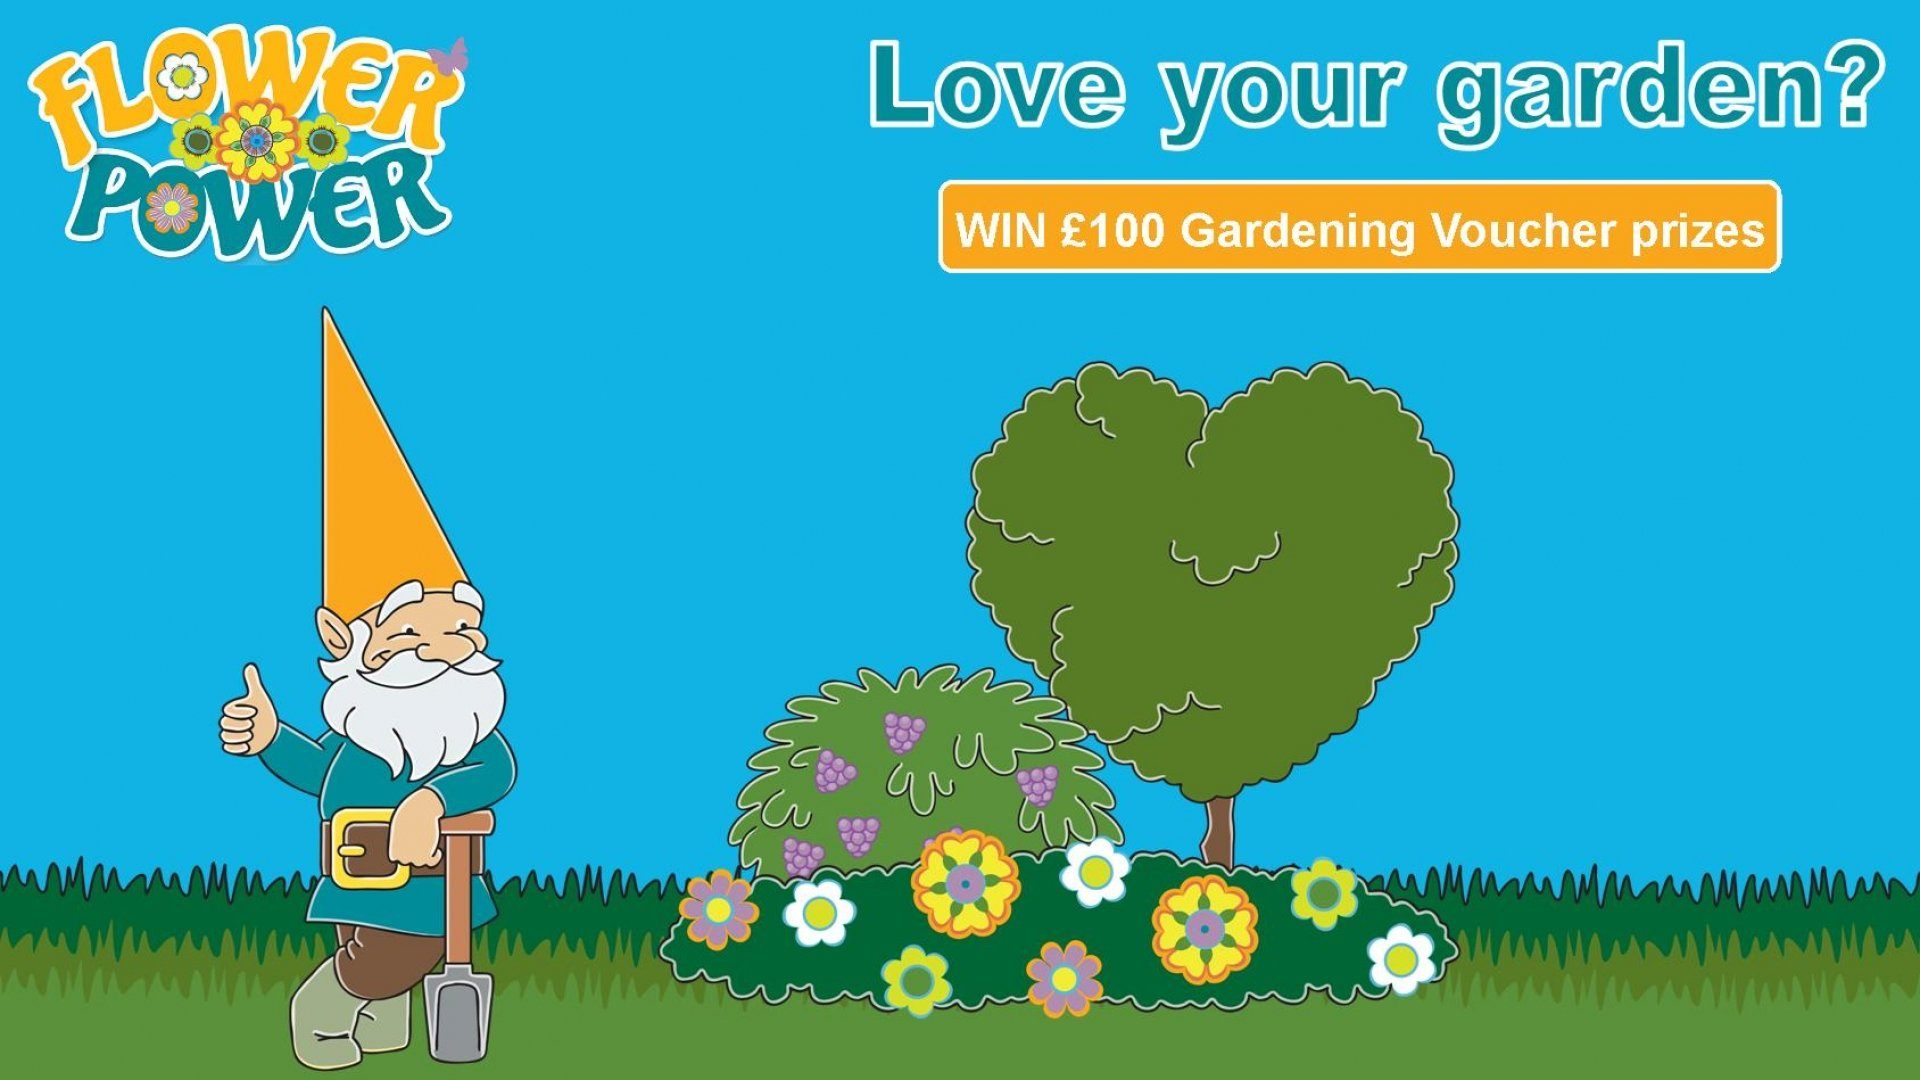 Flower Power - Six Town Housing's tenant gardening competition